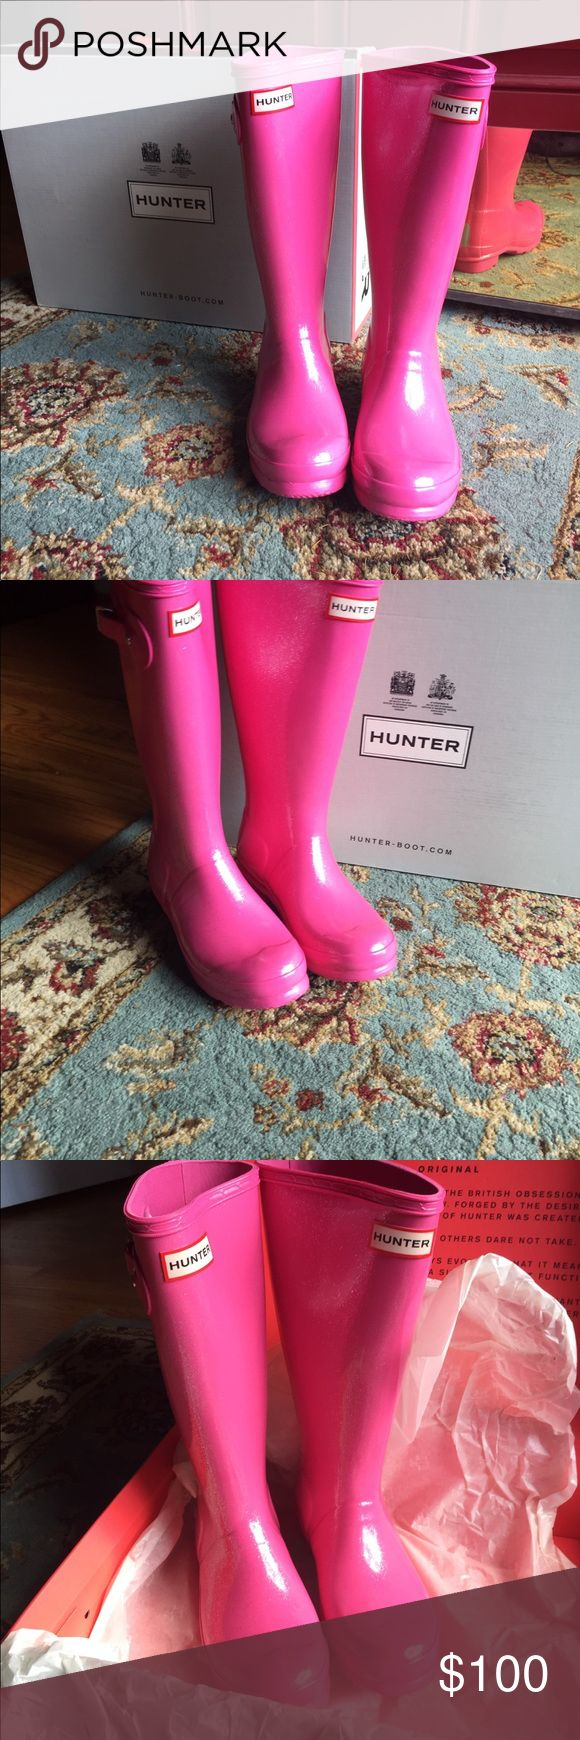 New Authentic Tall Hunter boots New with box beautiful pink glitter hunter boots.Fit women size 7.Price is firm. Hunter Shoes Winter & Rain Boots